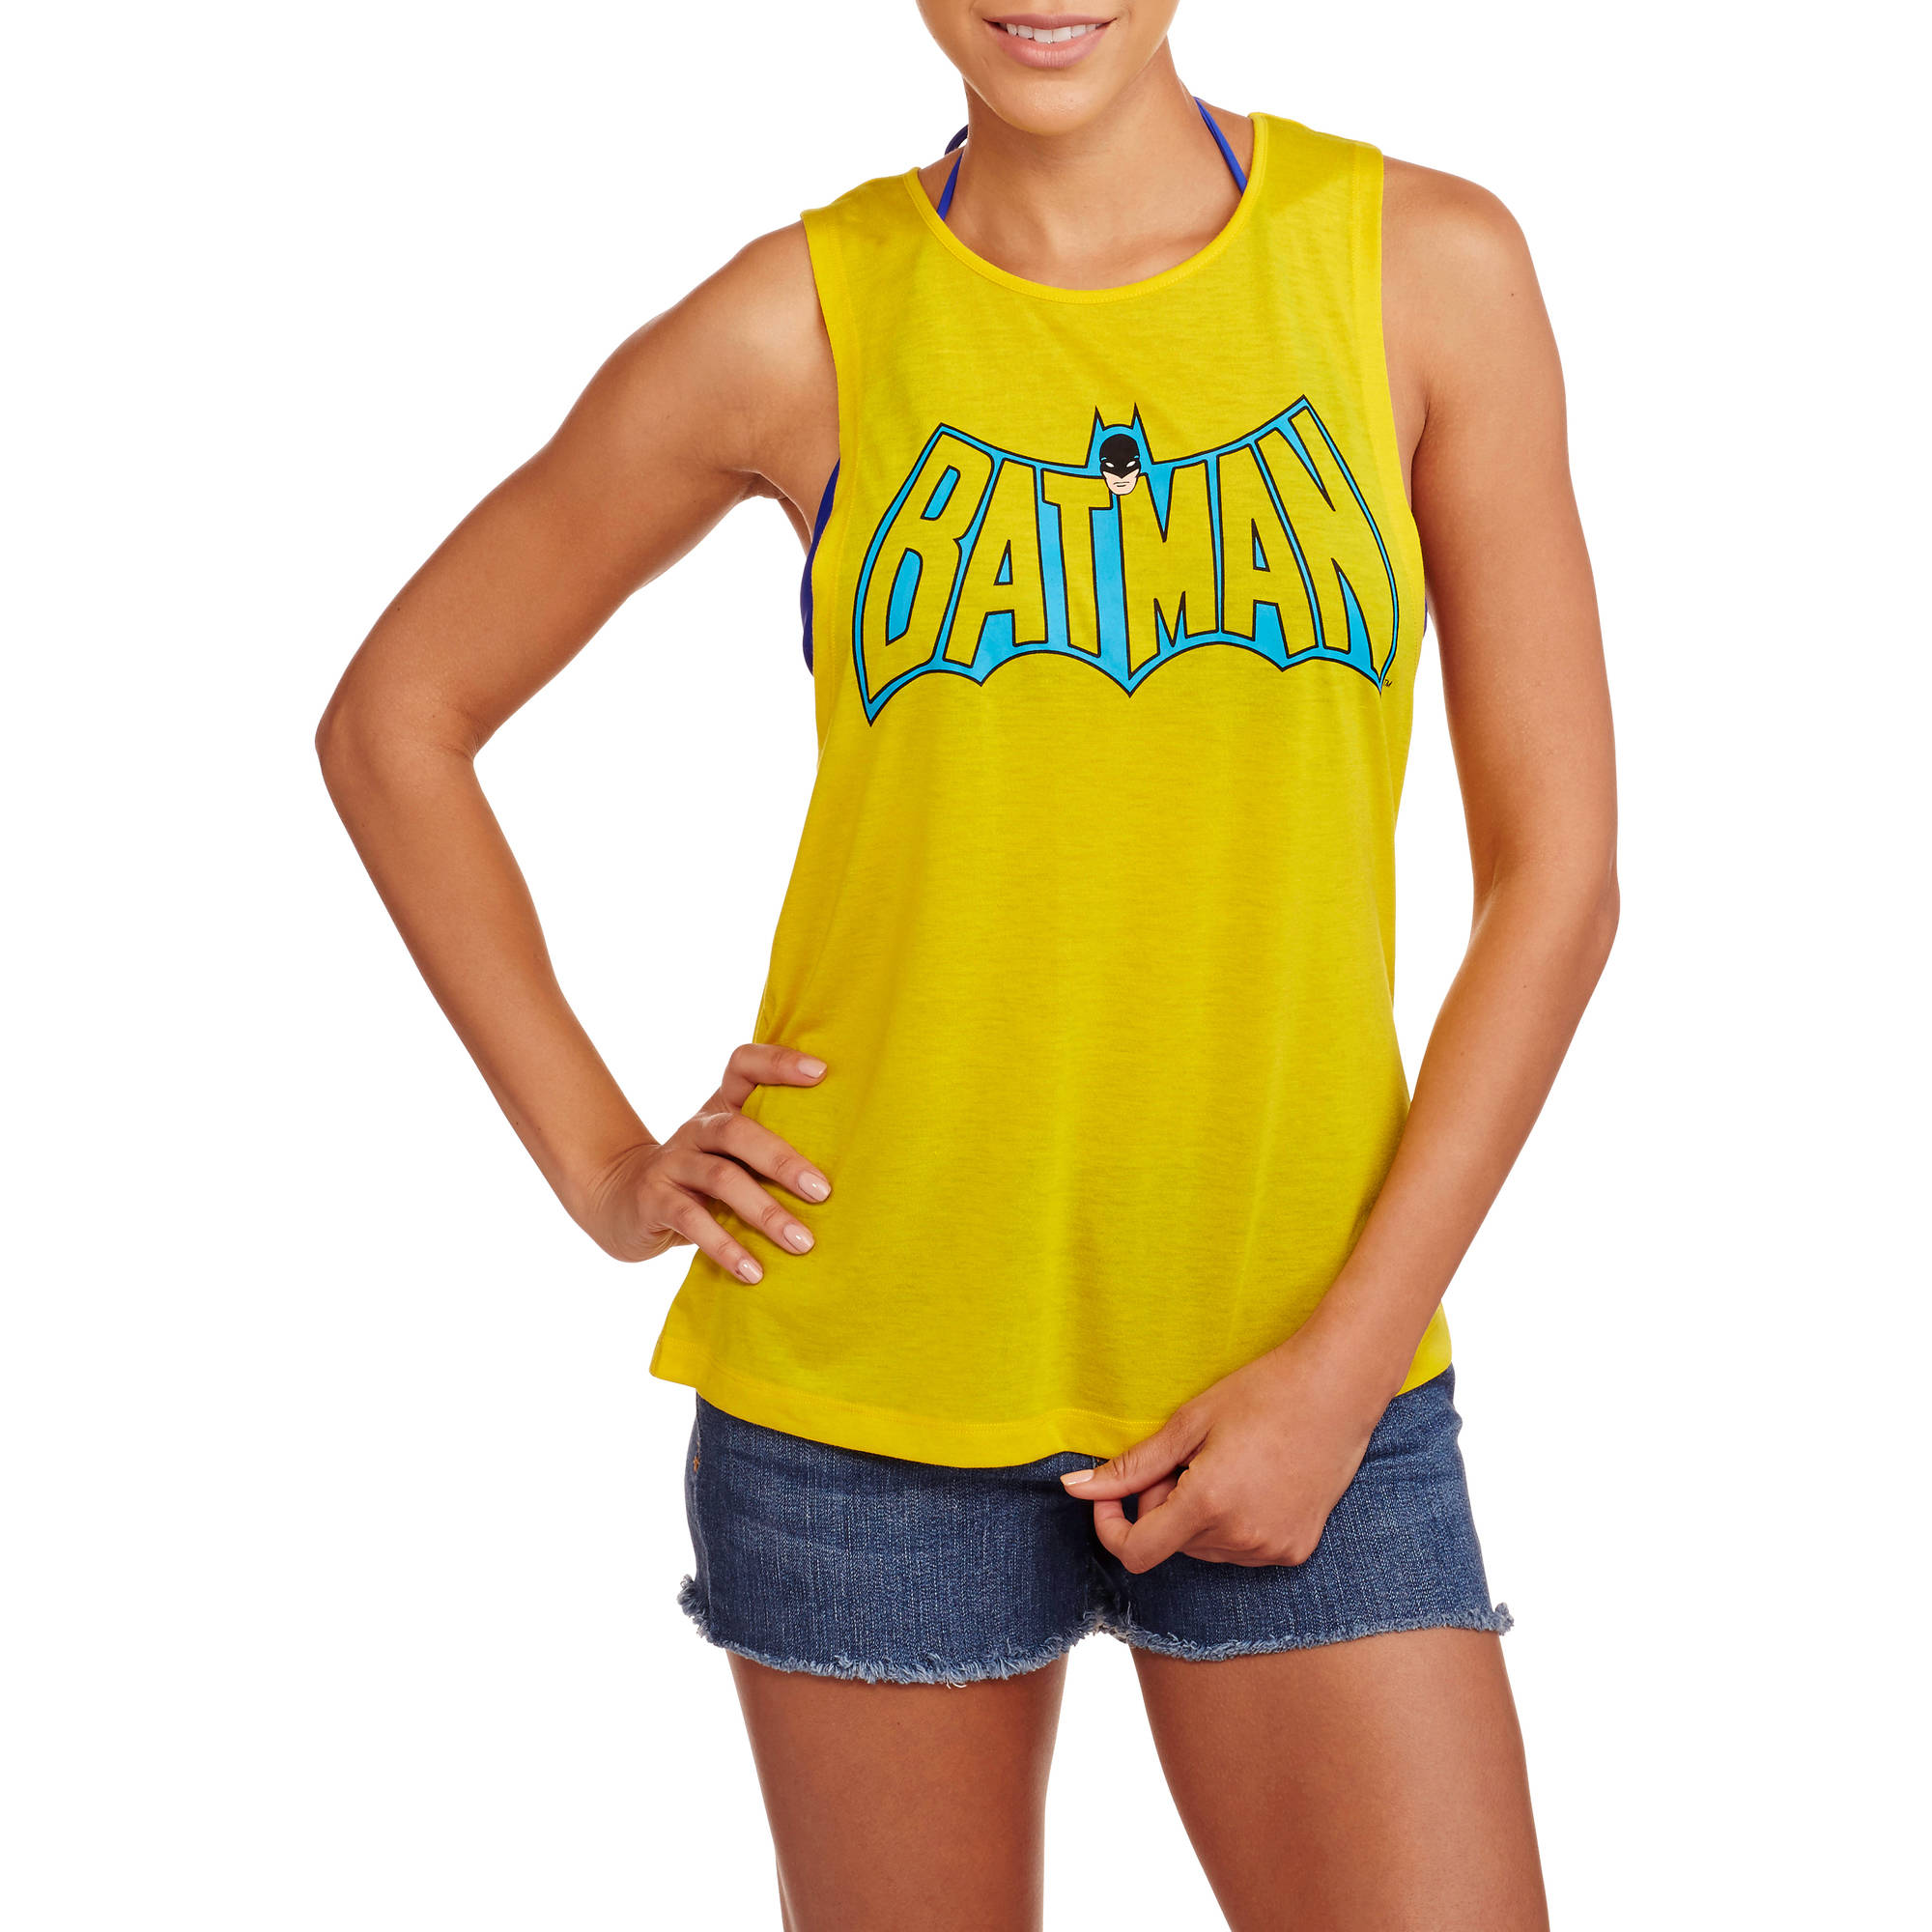 Batman Juniors Graphic Muscle Tank